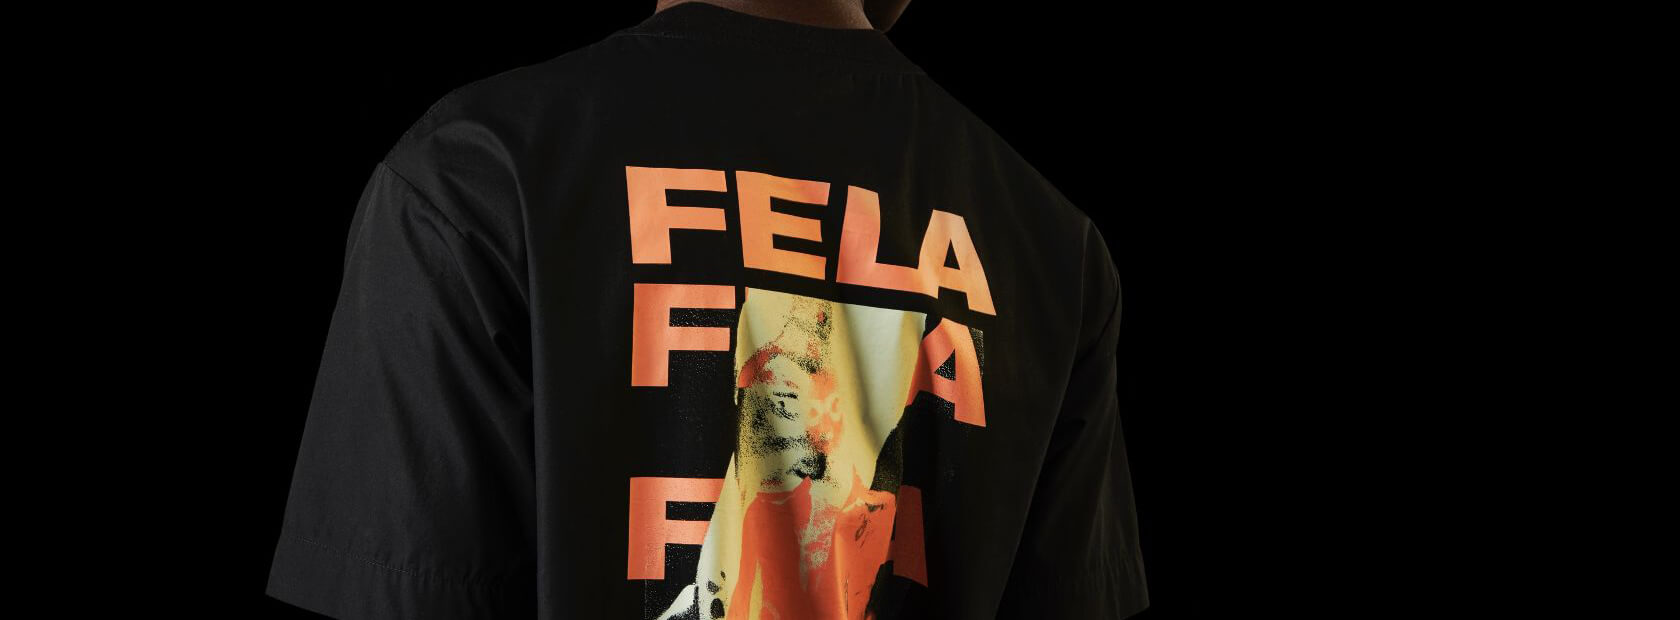 FELA KUTI x Carhartt WIP collaboration